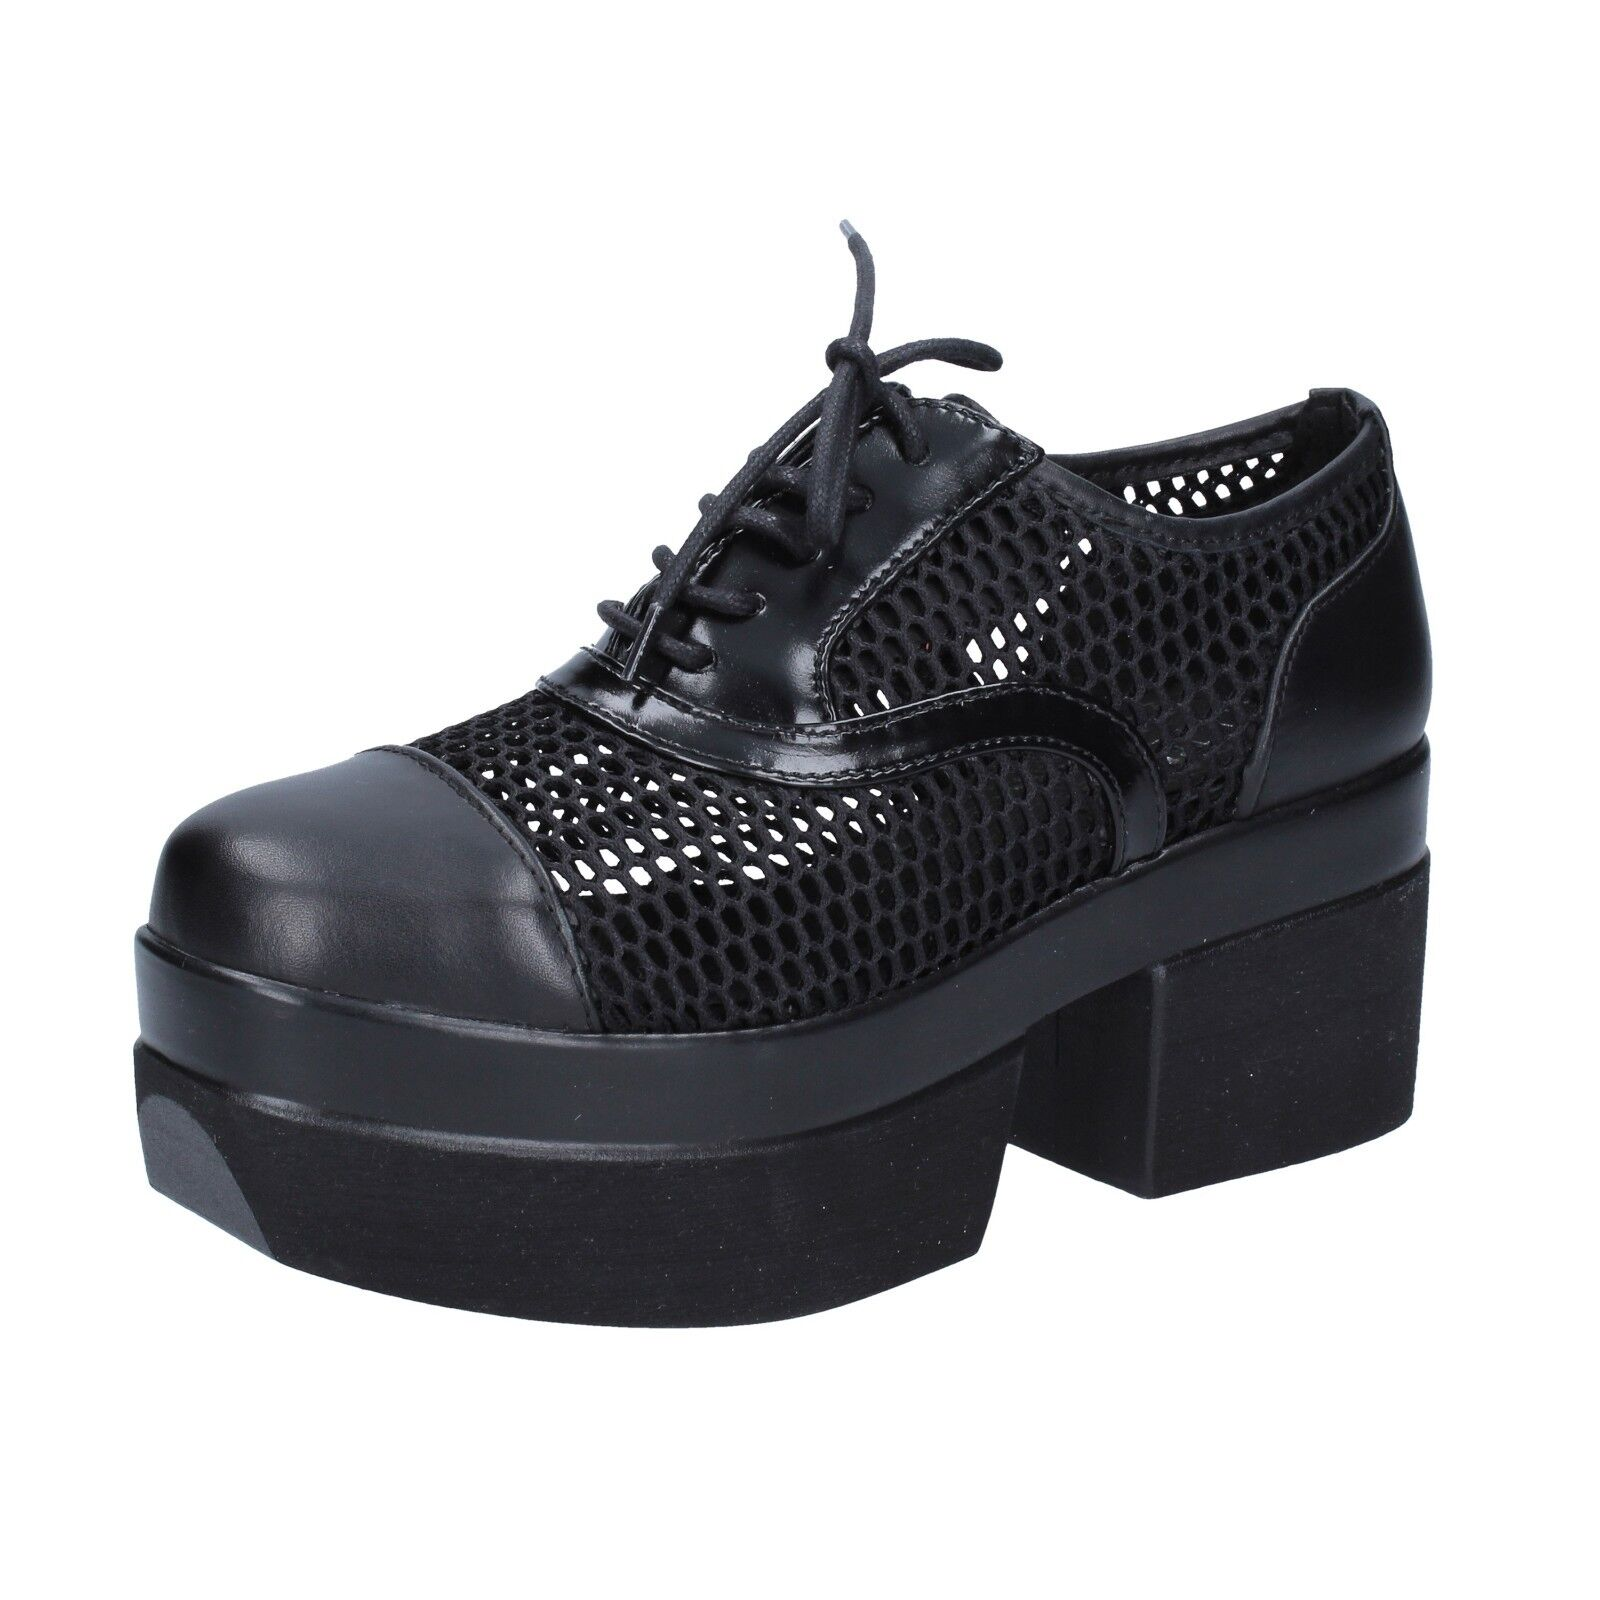 donna scarpe Cult 37 UE Elegant nero  Textile Leather bt549 -37  vendita scontata